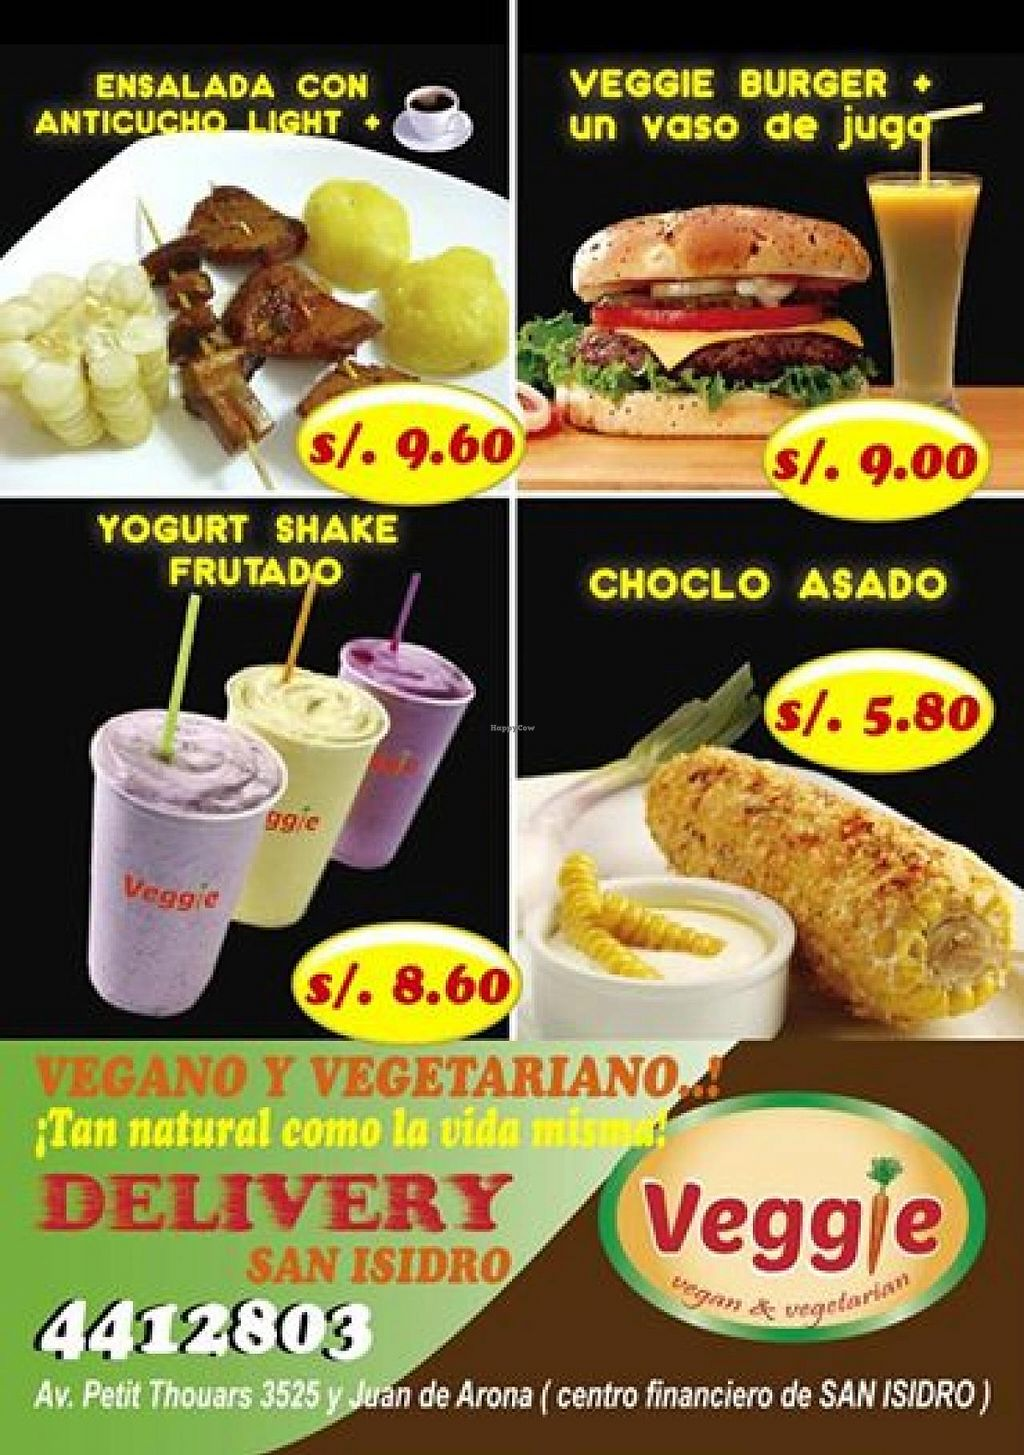 """Photo of CLOSED: Veggie  by <a href=""""/members/profile/Rasadhari"""">Rasadhari</a> <br/>Veggie owner and friend <br/> January 19, 2014  - <a href='/contact/abuse/image/44660/62762'>Report</a>"""